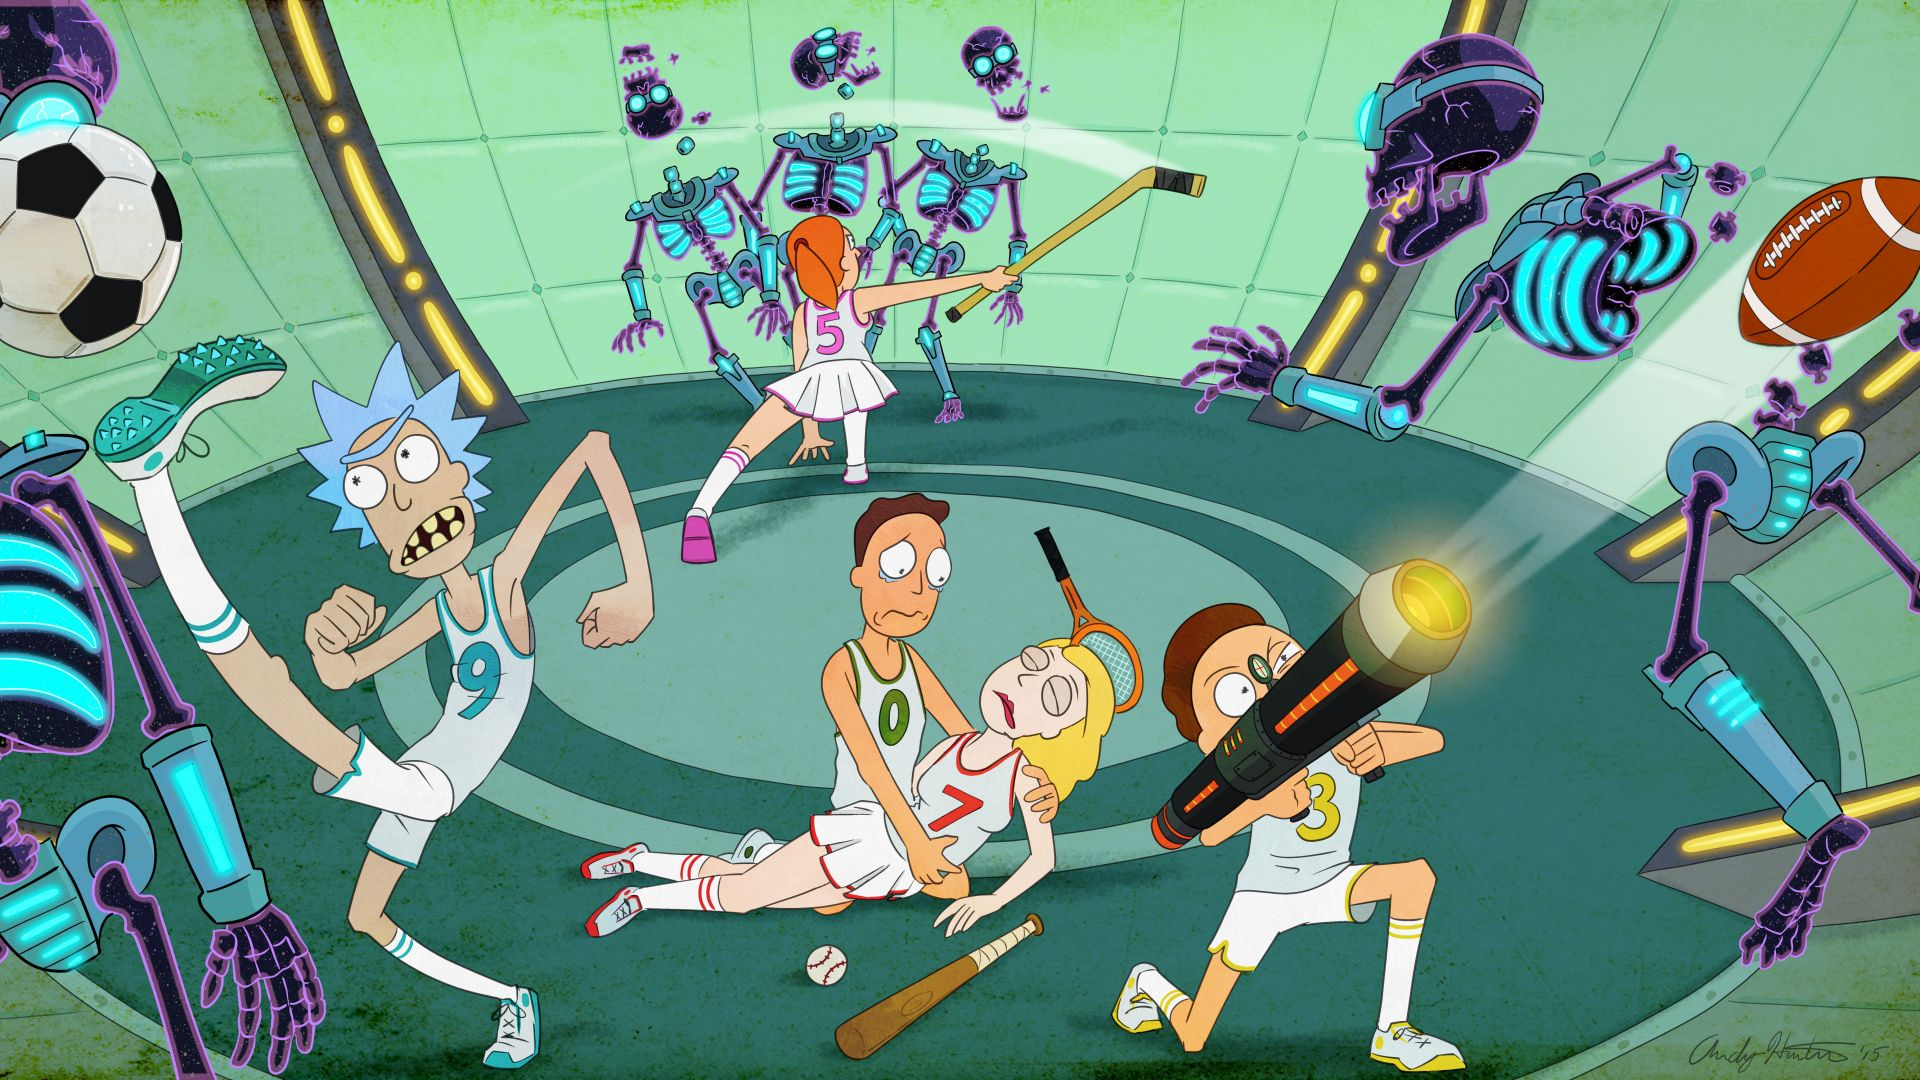 Rick and Morty, rick, 3 season, best tv series, best animations movies (horizontal)